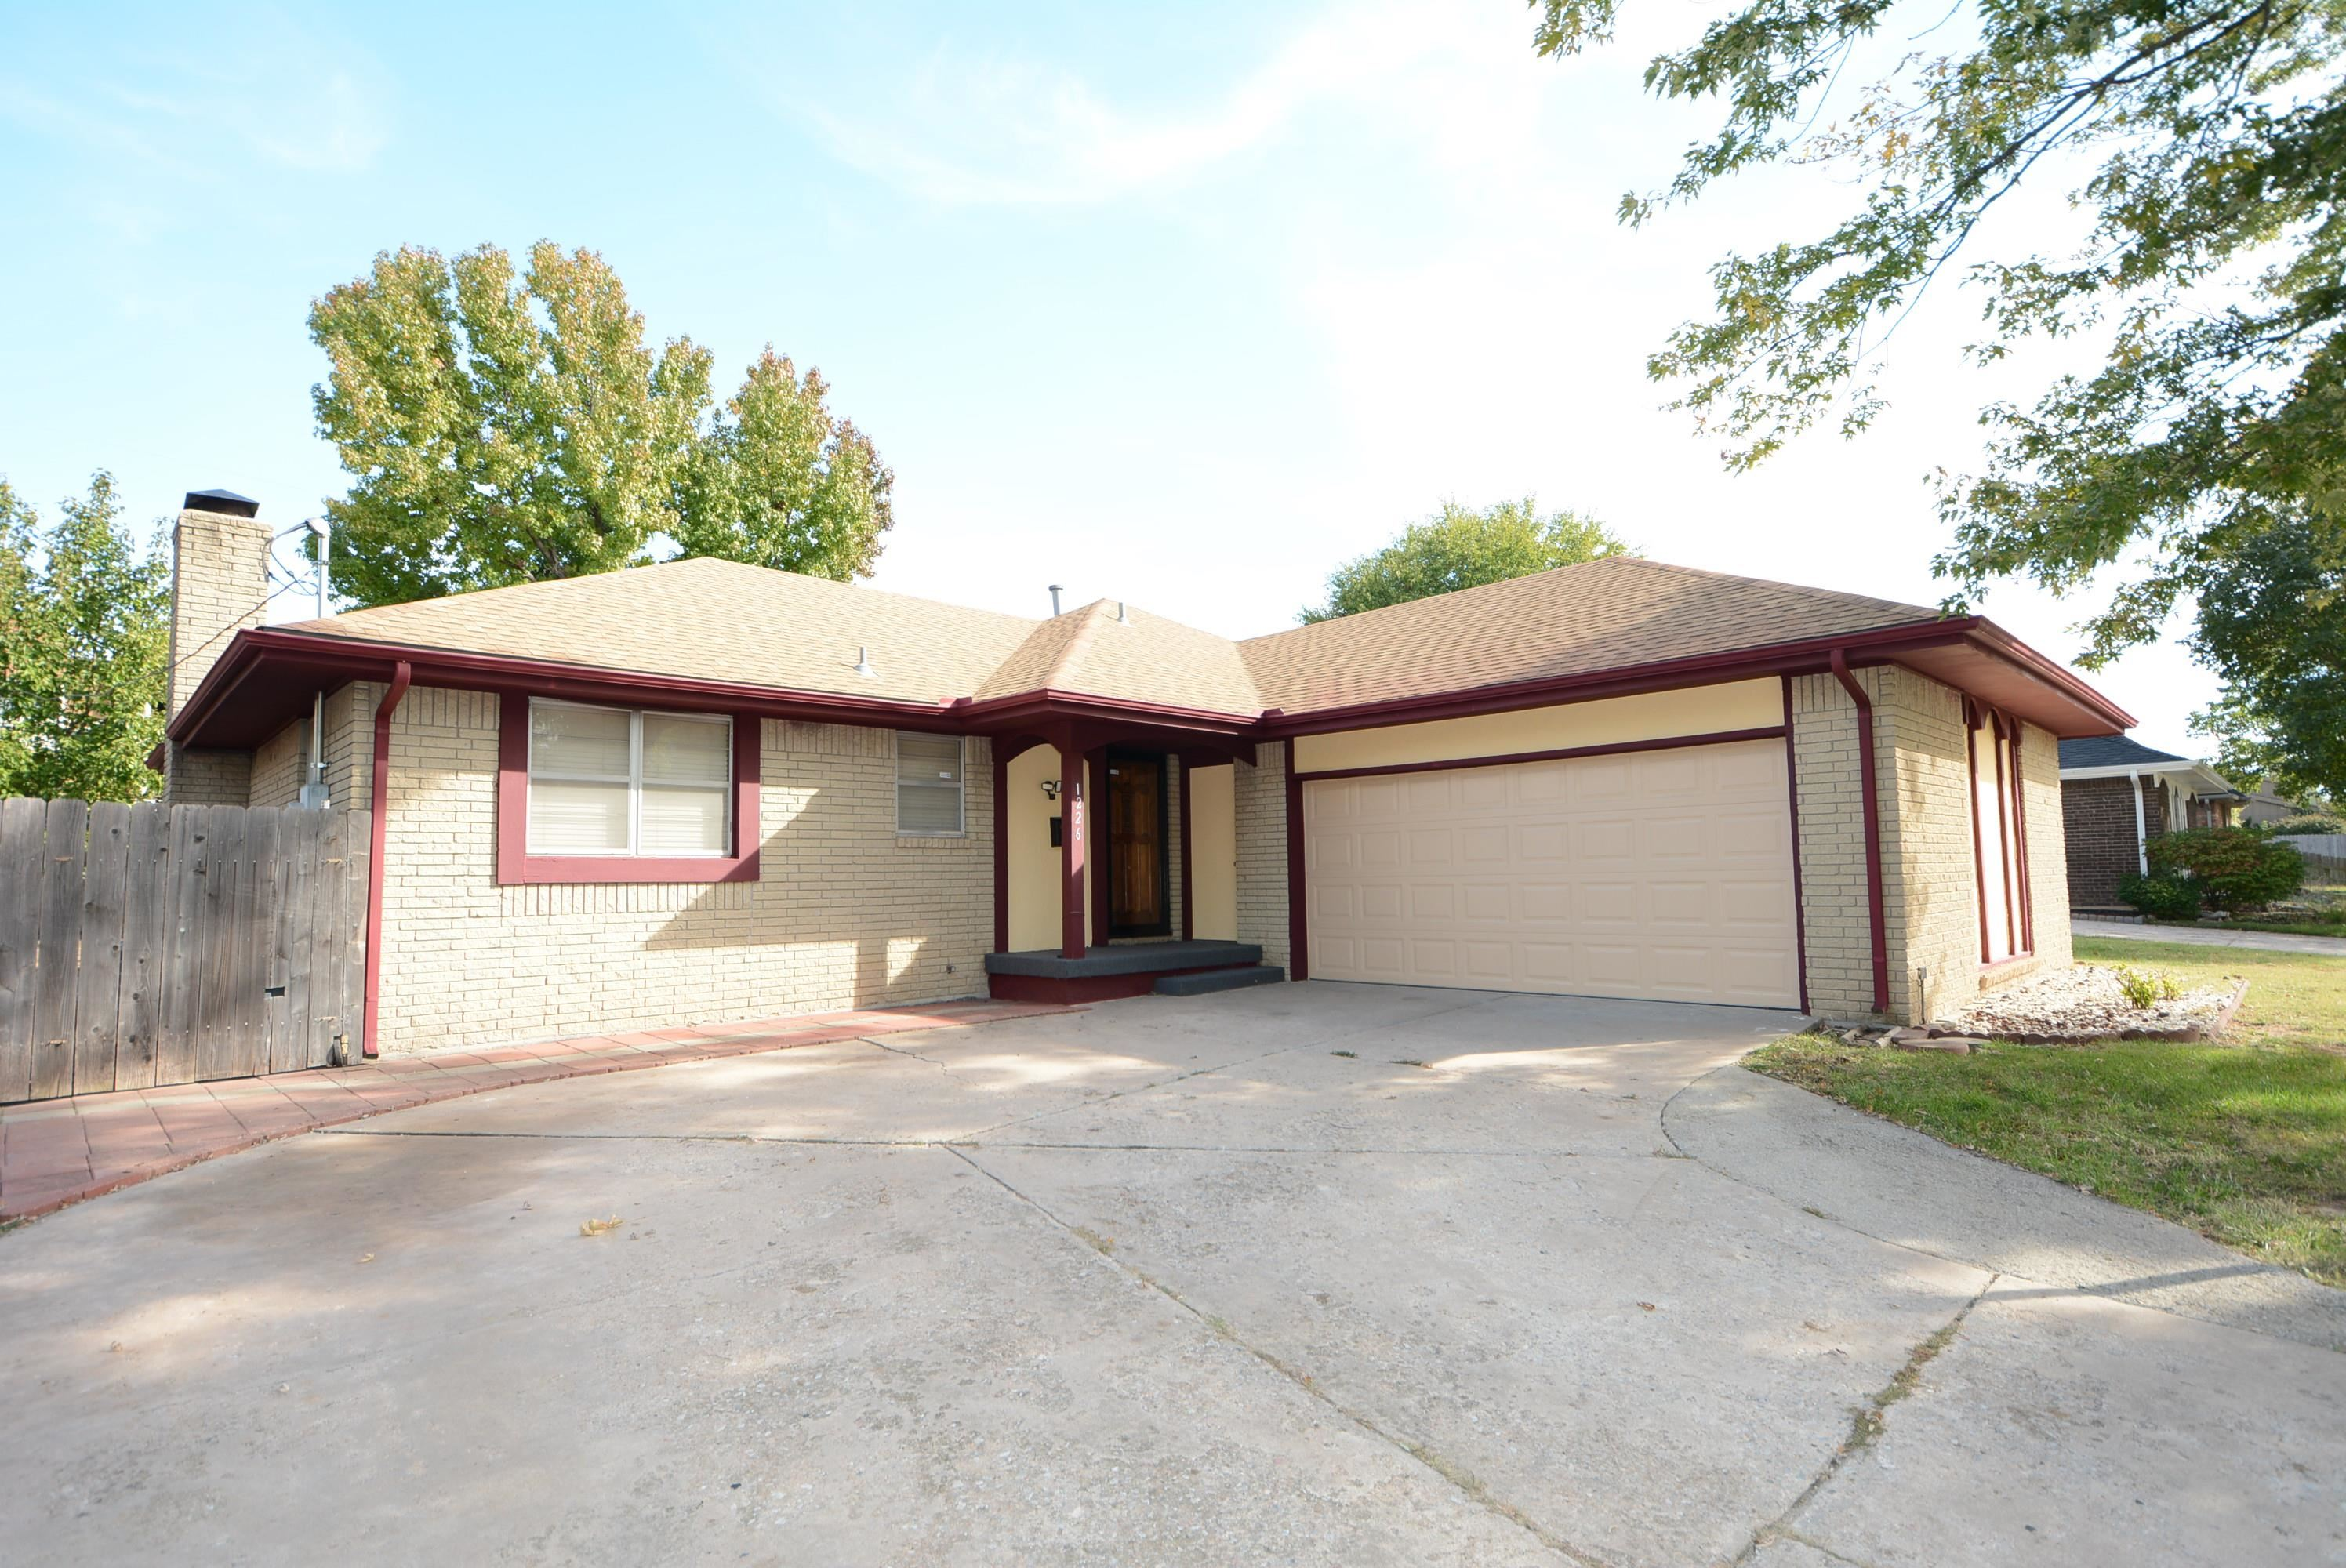 All information deemed to be reliable, but not guaranteed. Buyer agent verify room size and school i